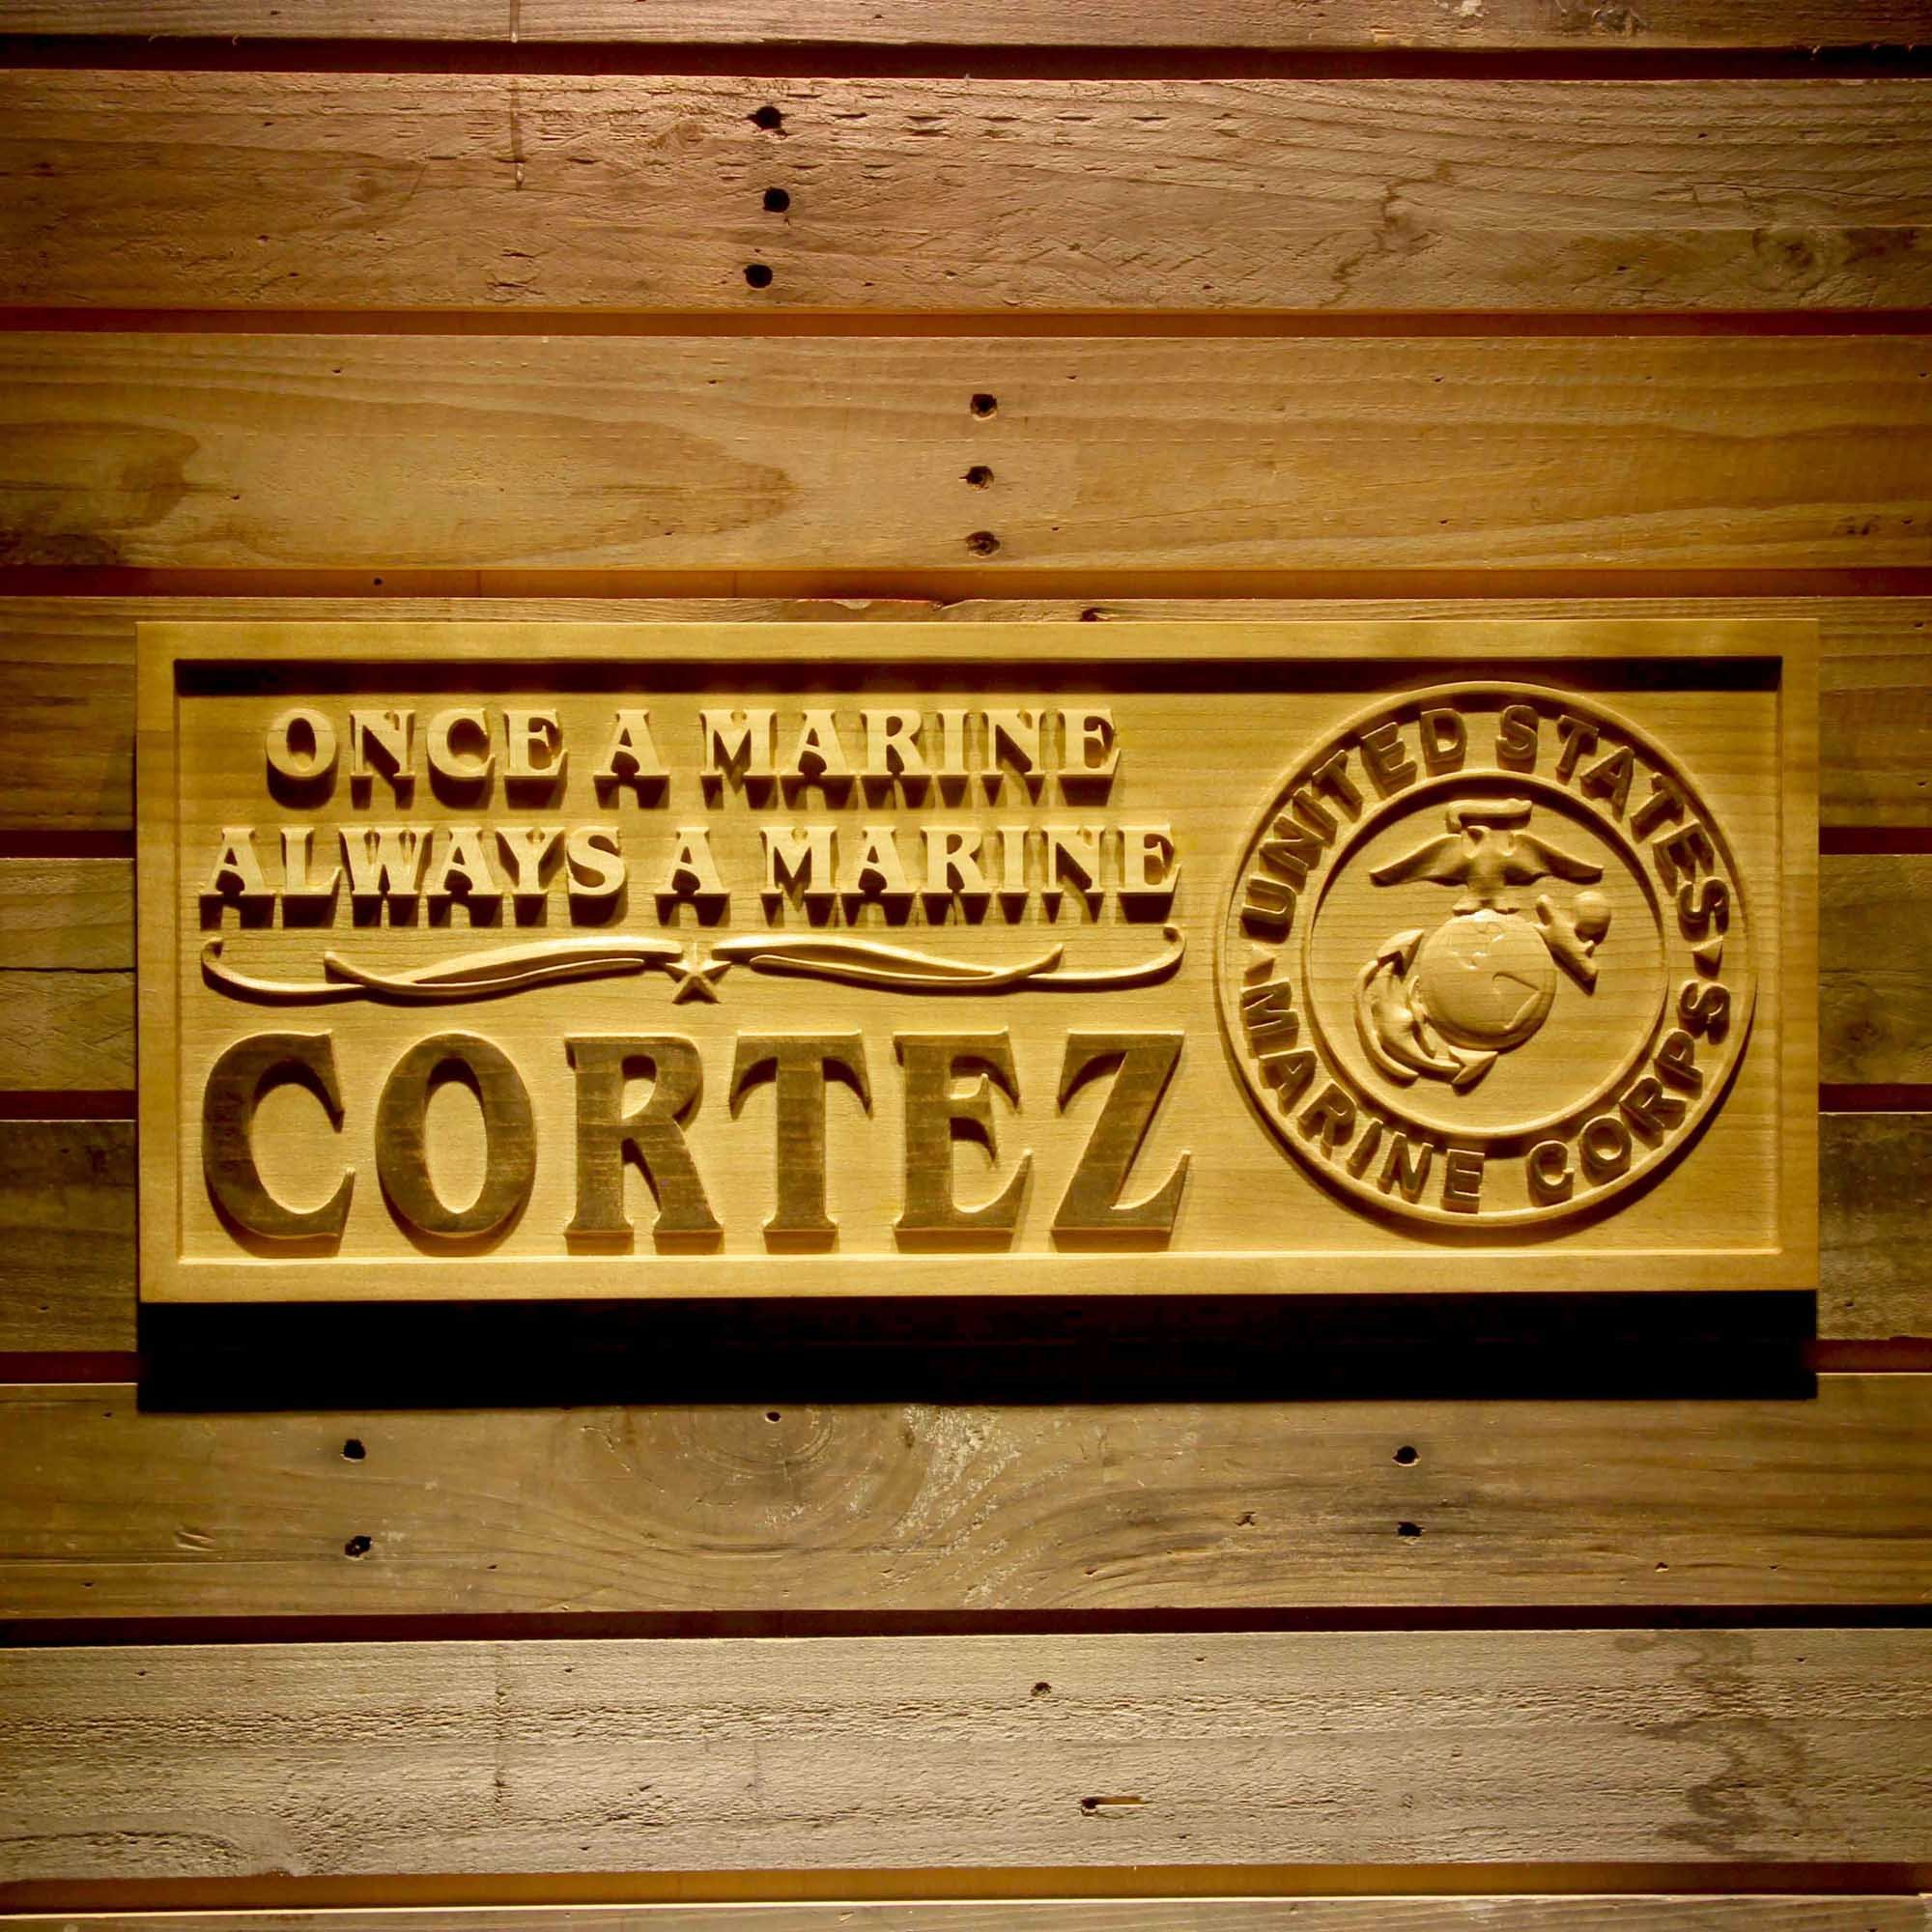 ADVPRO wpa0345 Name Personalized United States Marine Corps Gifts Wood Engraved Wooden Sign - Standard 23'' x 9.25''